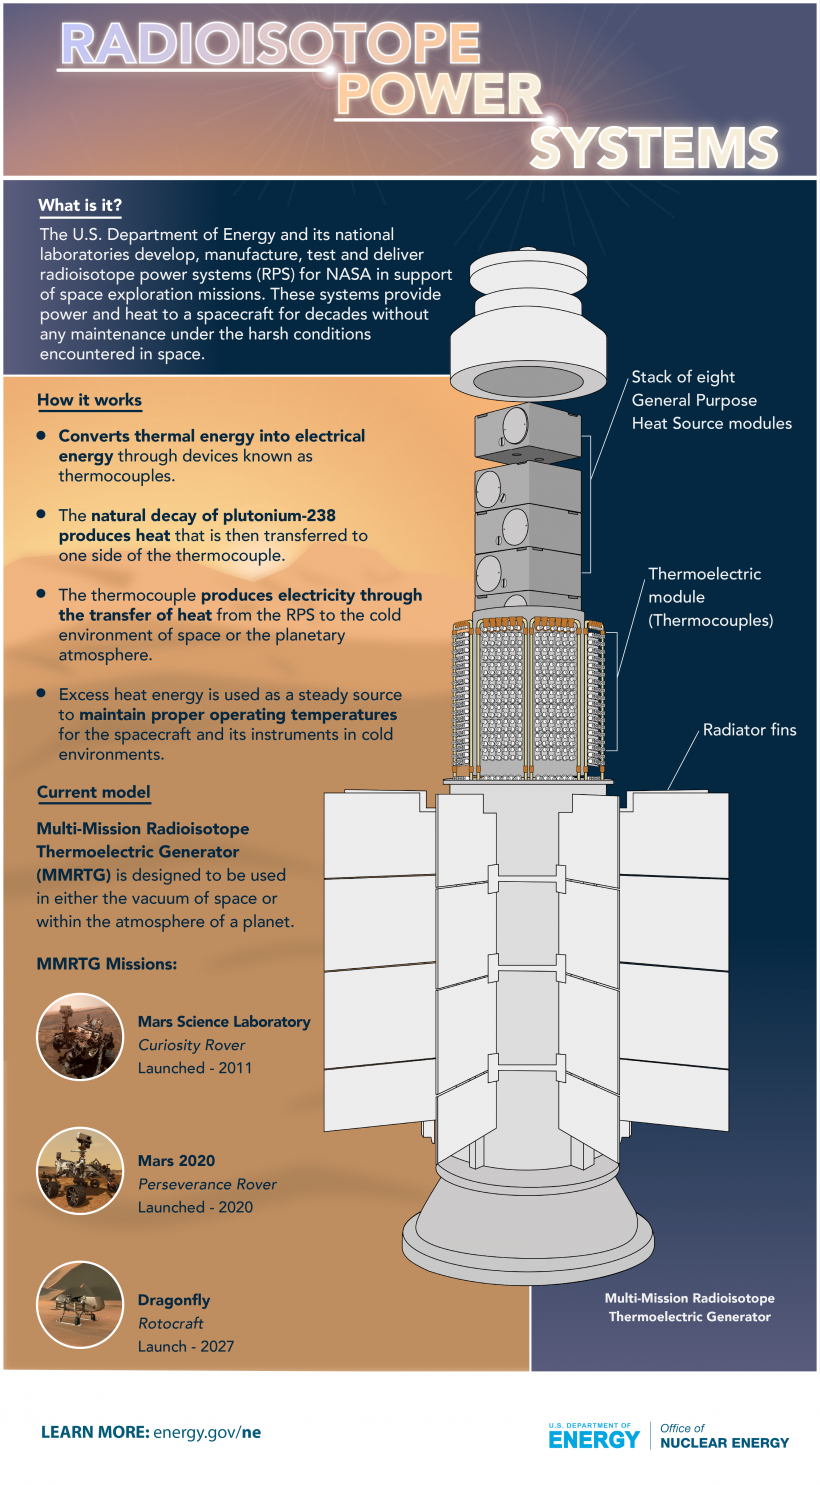 Radioisotope Power Systems Infographic